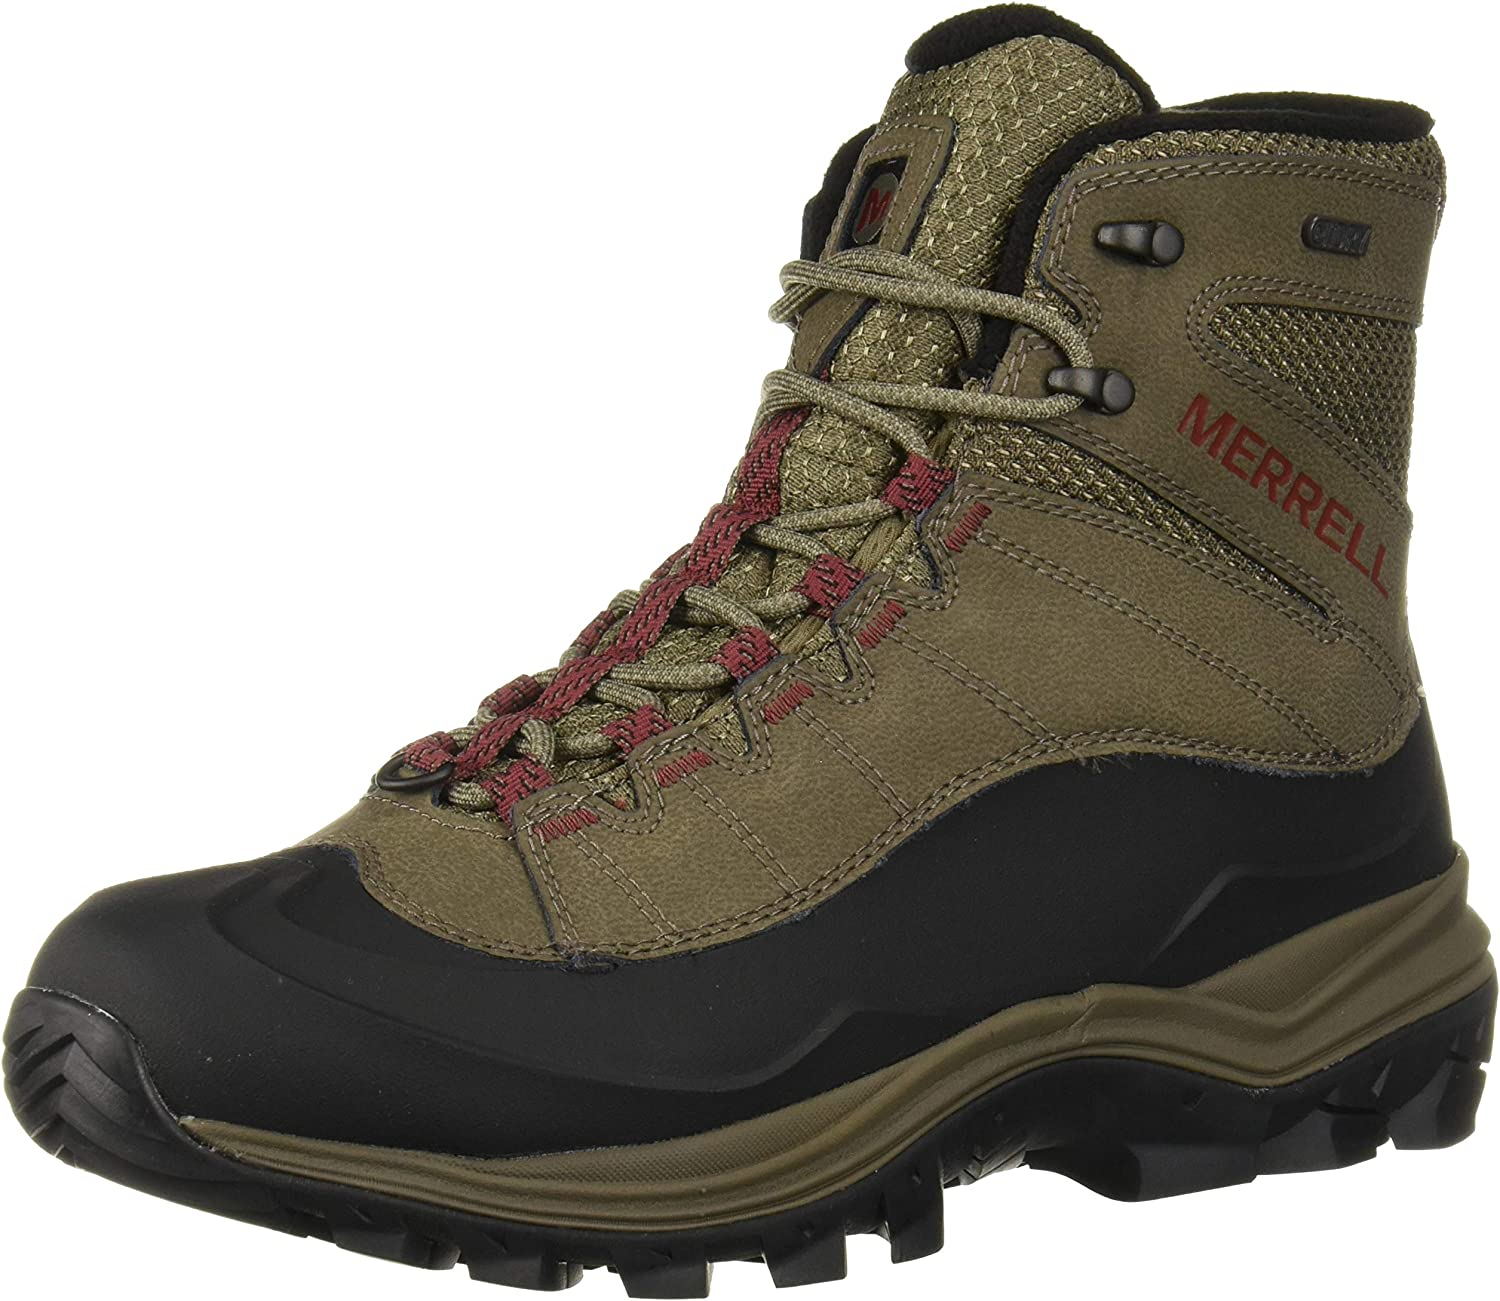 Merrell Mens Thermo Crossover Mid Waterproof Boots